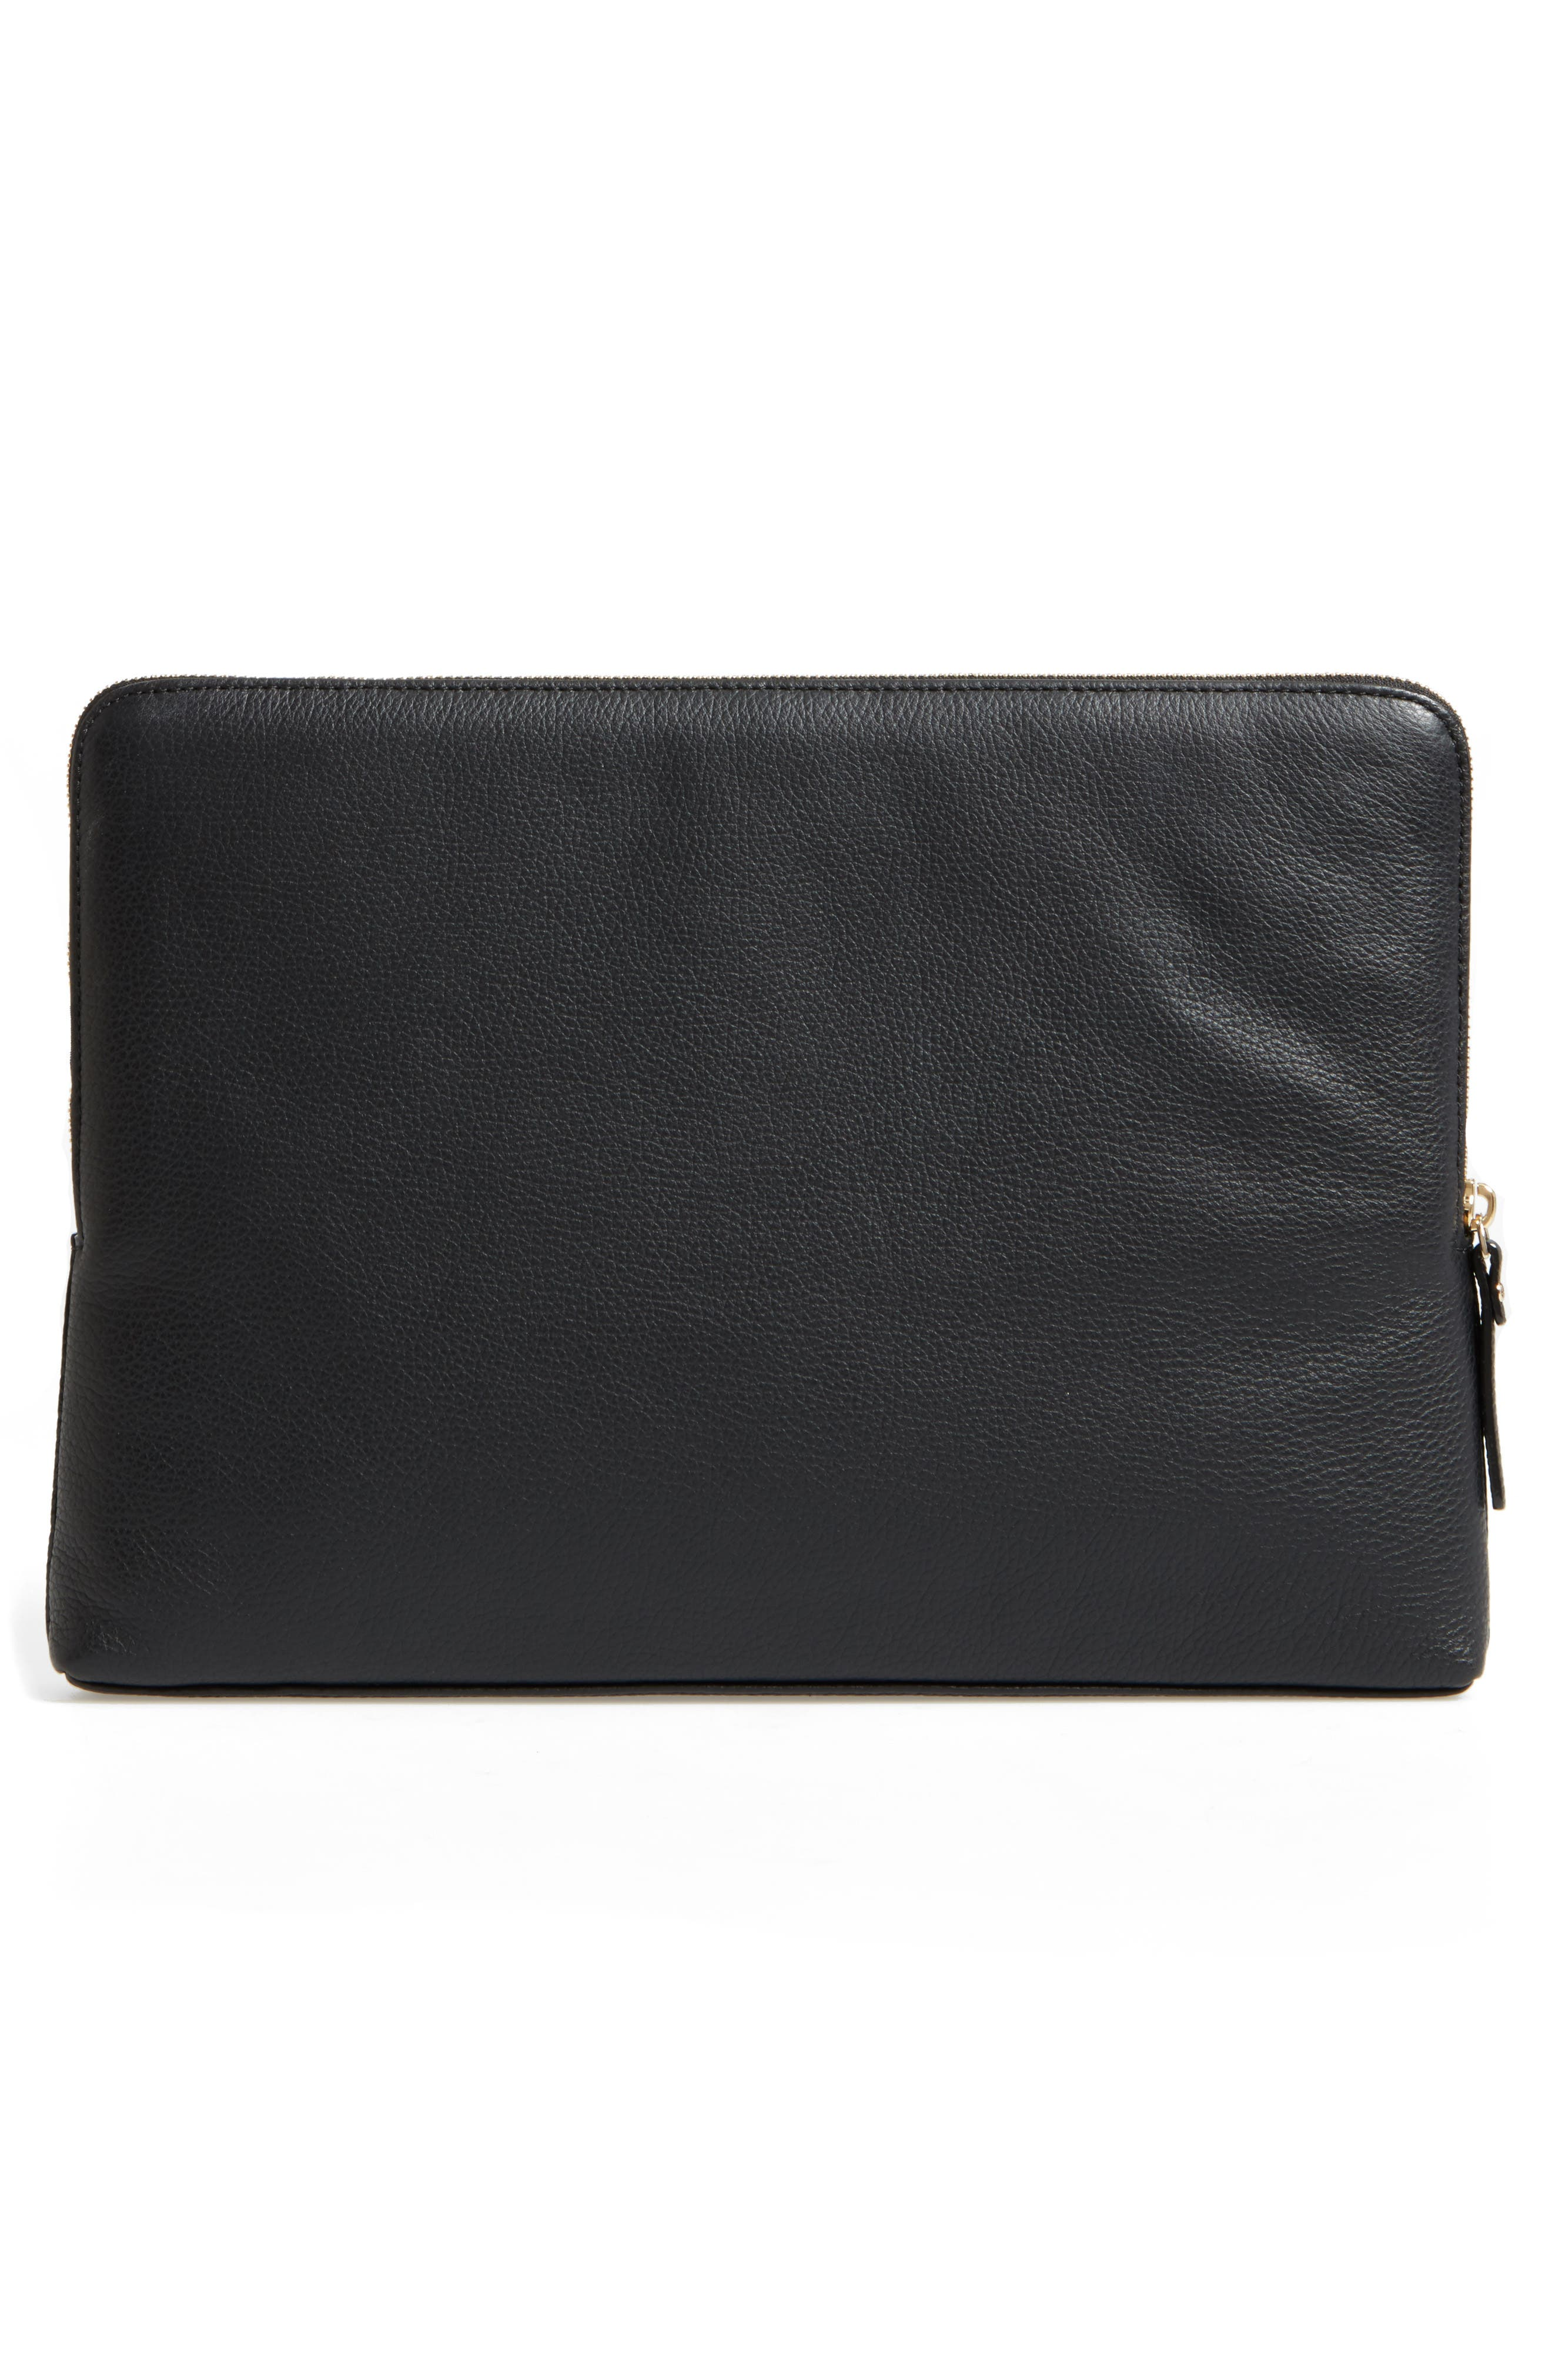 13-inch leather laptop sleeve,                             Alternate thumbnail 2, color,                             Black